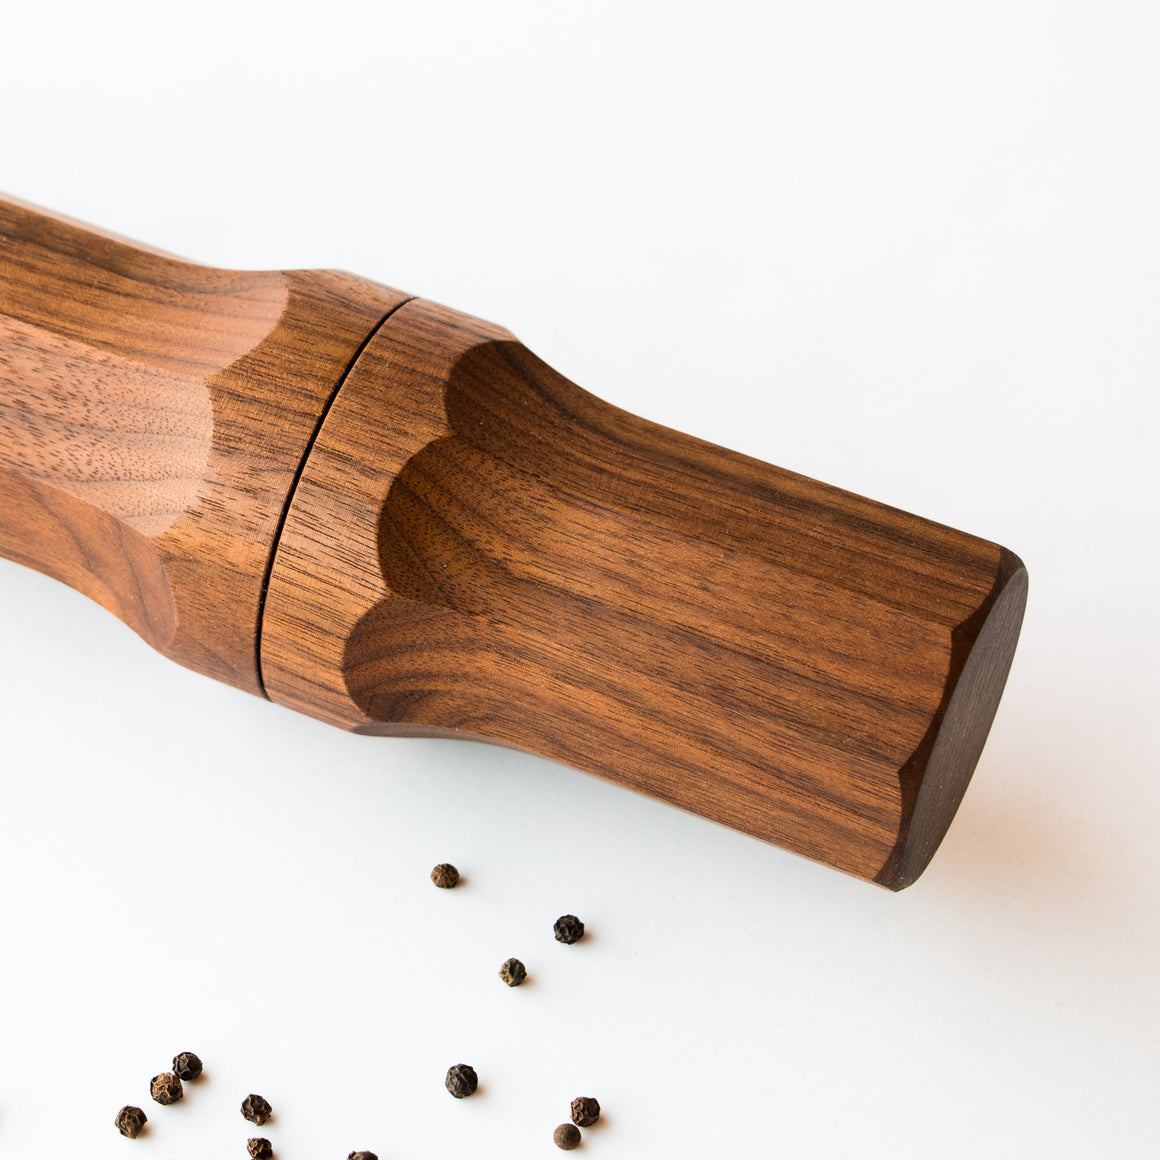 Salt and Pepper Mill - Handmade in Walnut Wood - Sold by Chic & Basta